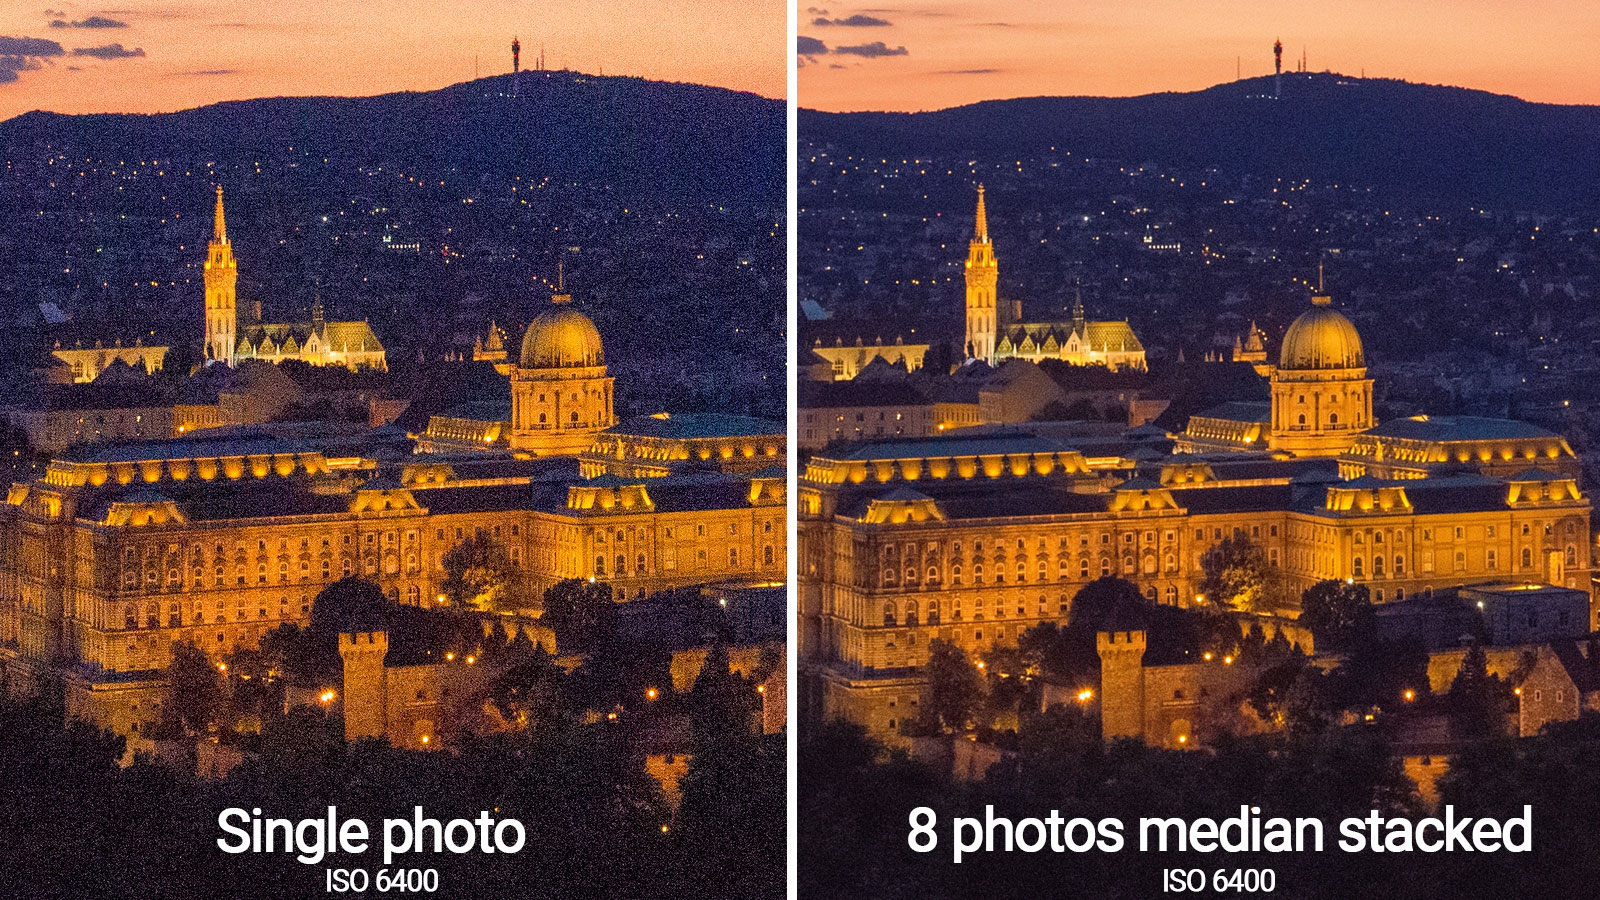 median stacking noise reduction before-after photoshop